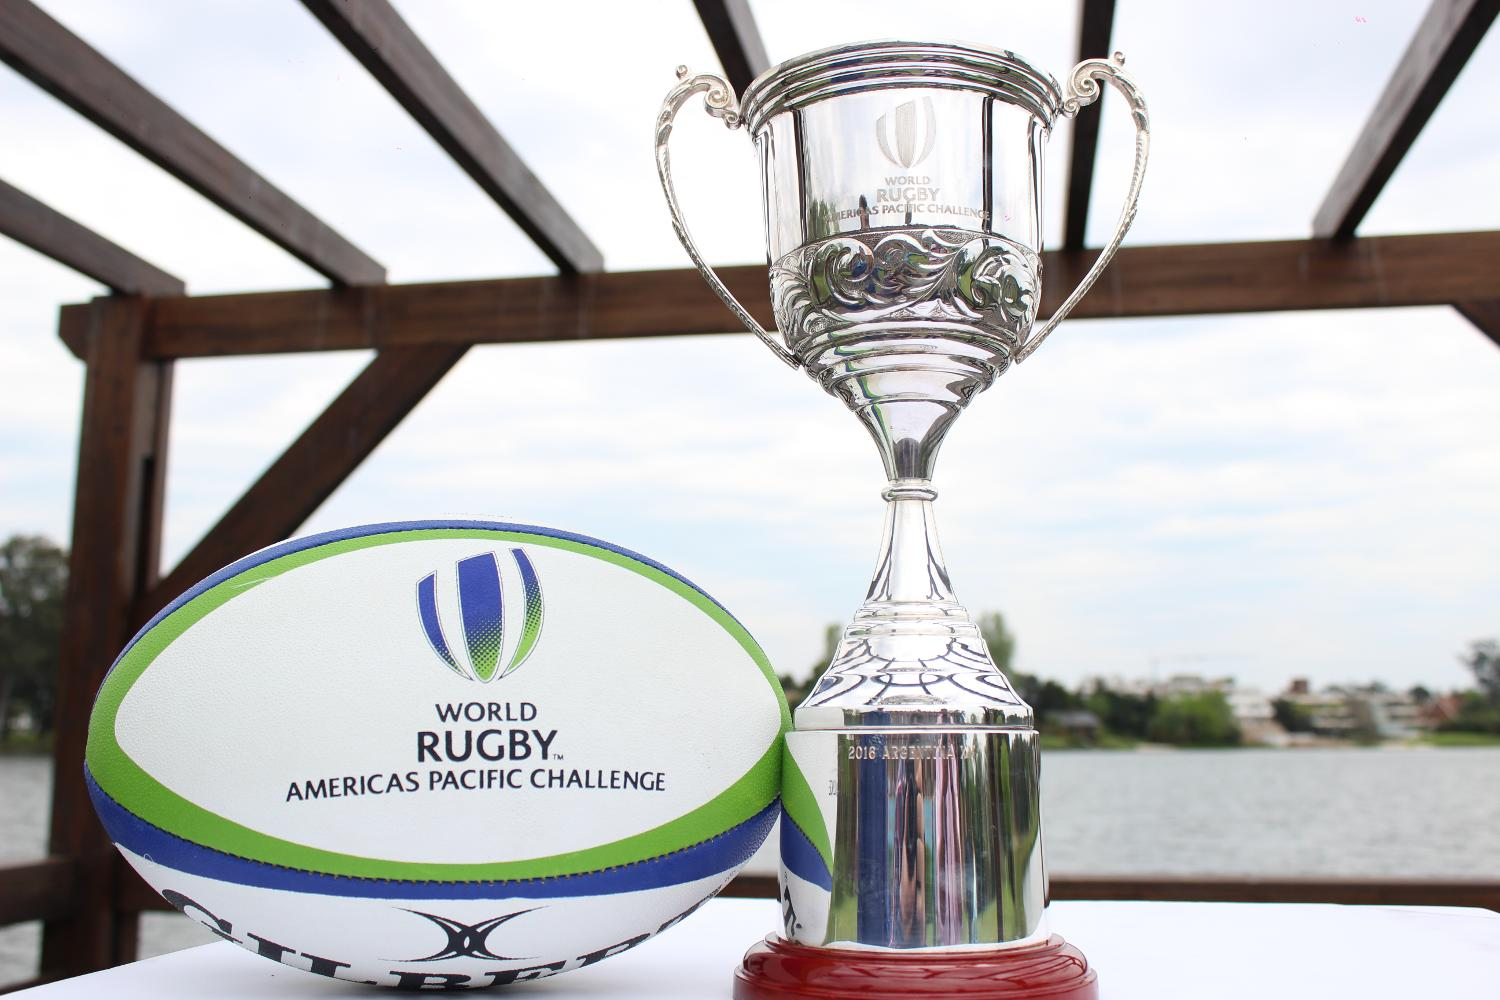 World Rugby Americas Pacific Challenge 2017